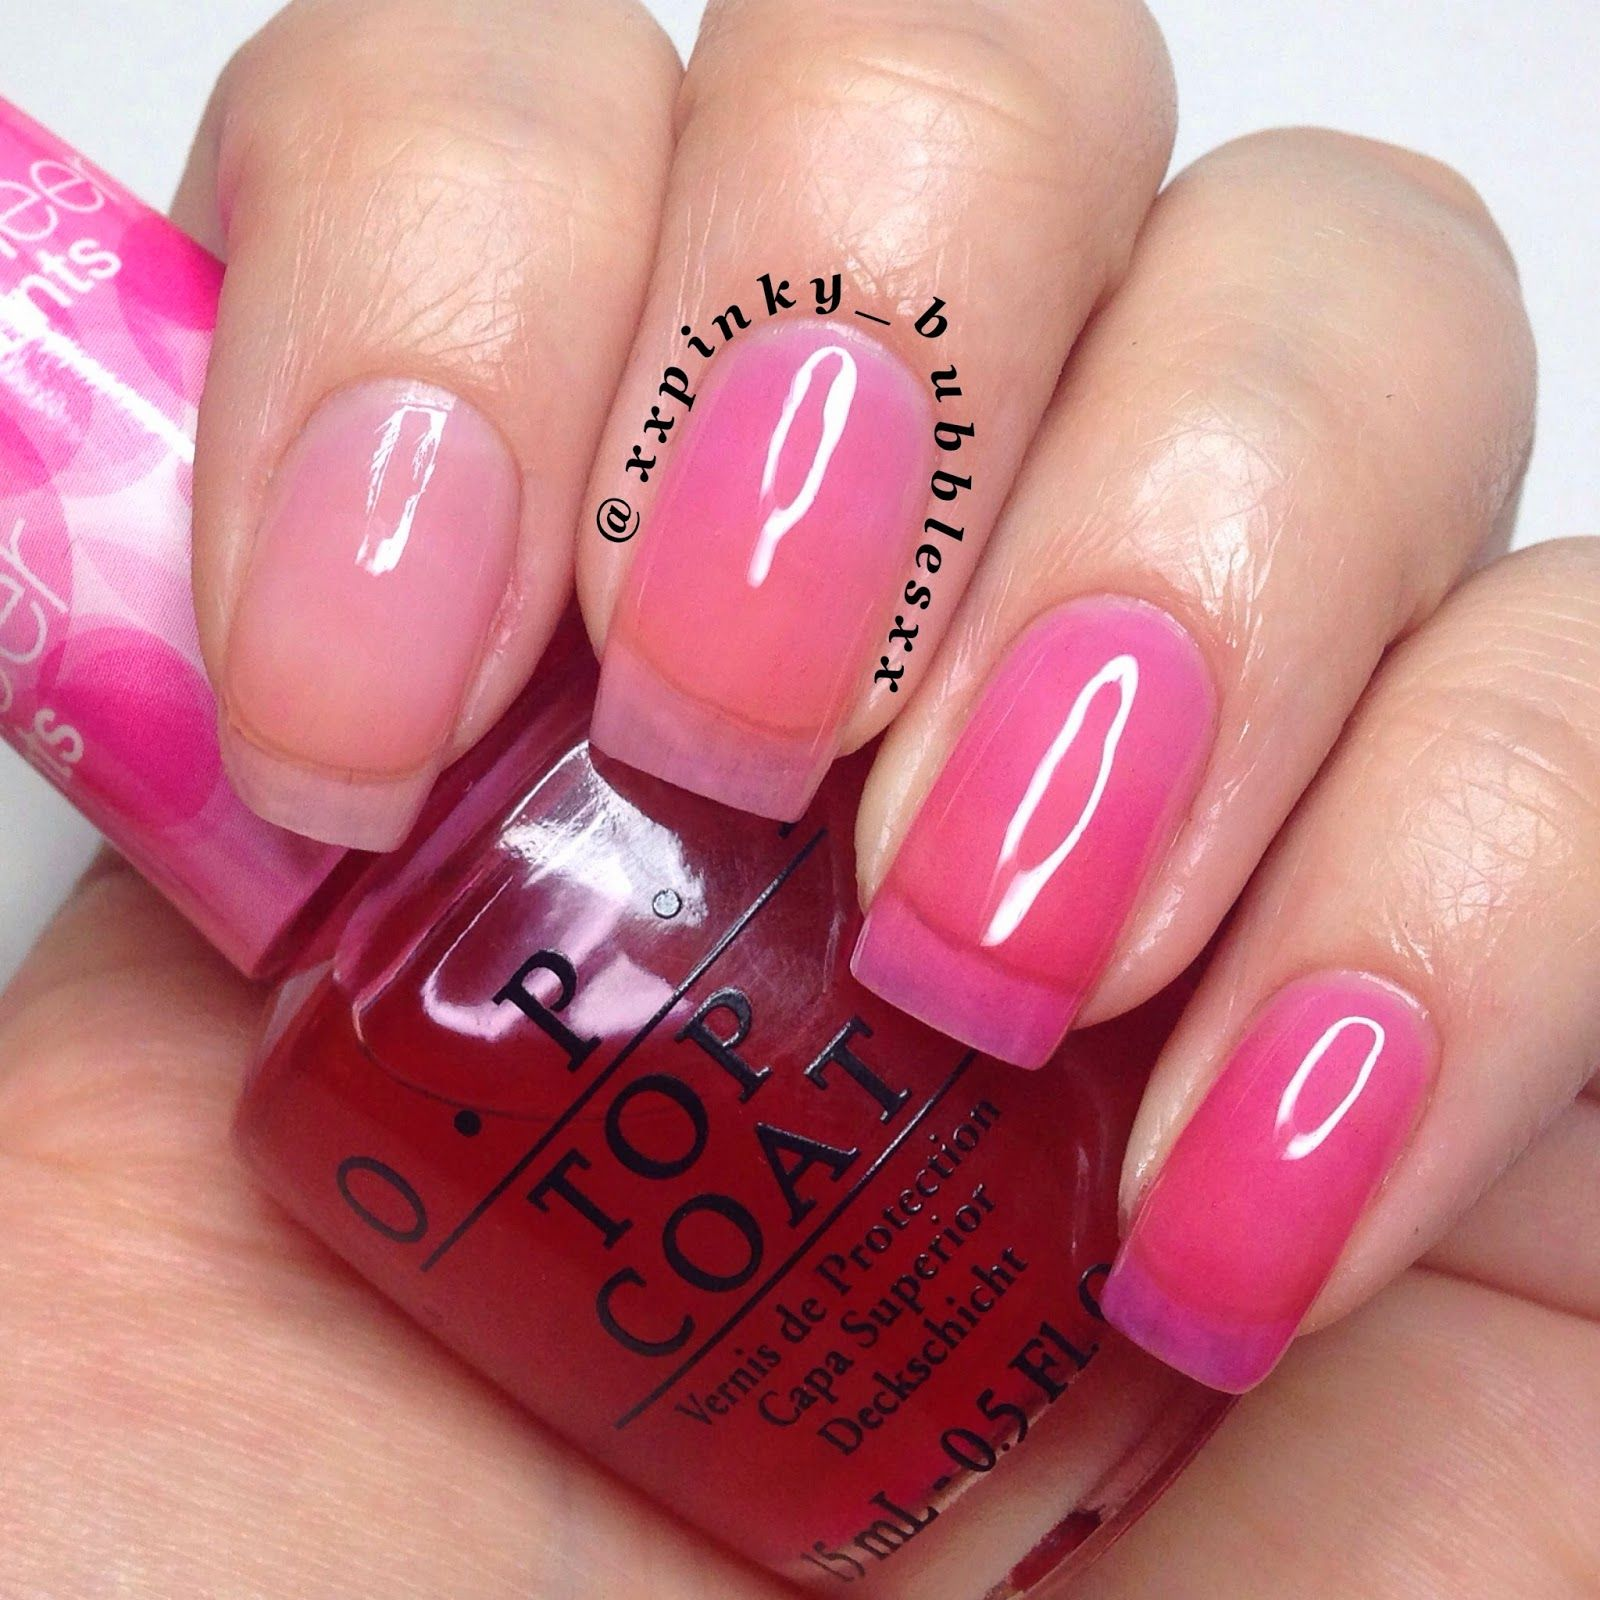 O.P.I - Sheer Tints - Be Magentale With Me | ネイル | Pinterest ...